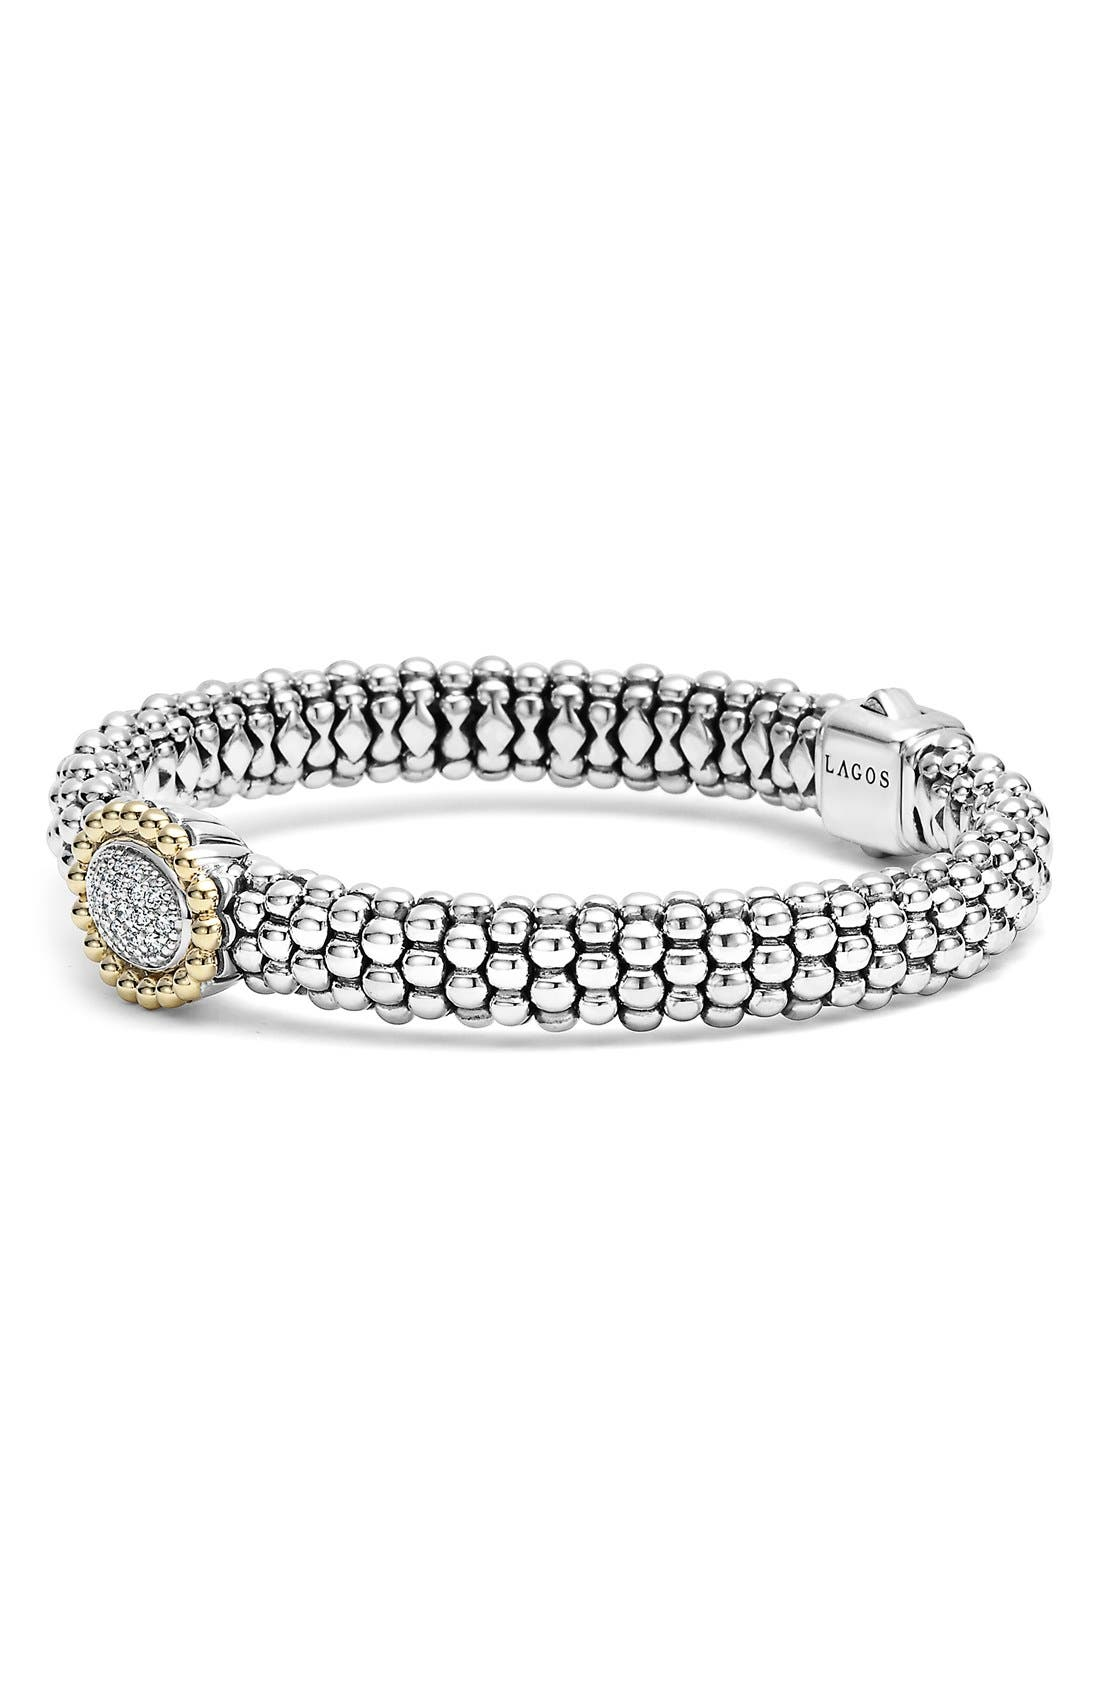 'Caviar' Diamond Bracelet,                             Alternate thumbnail 3, color,                             040